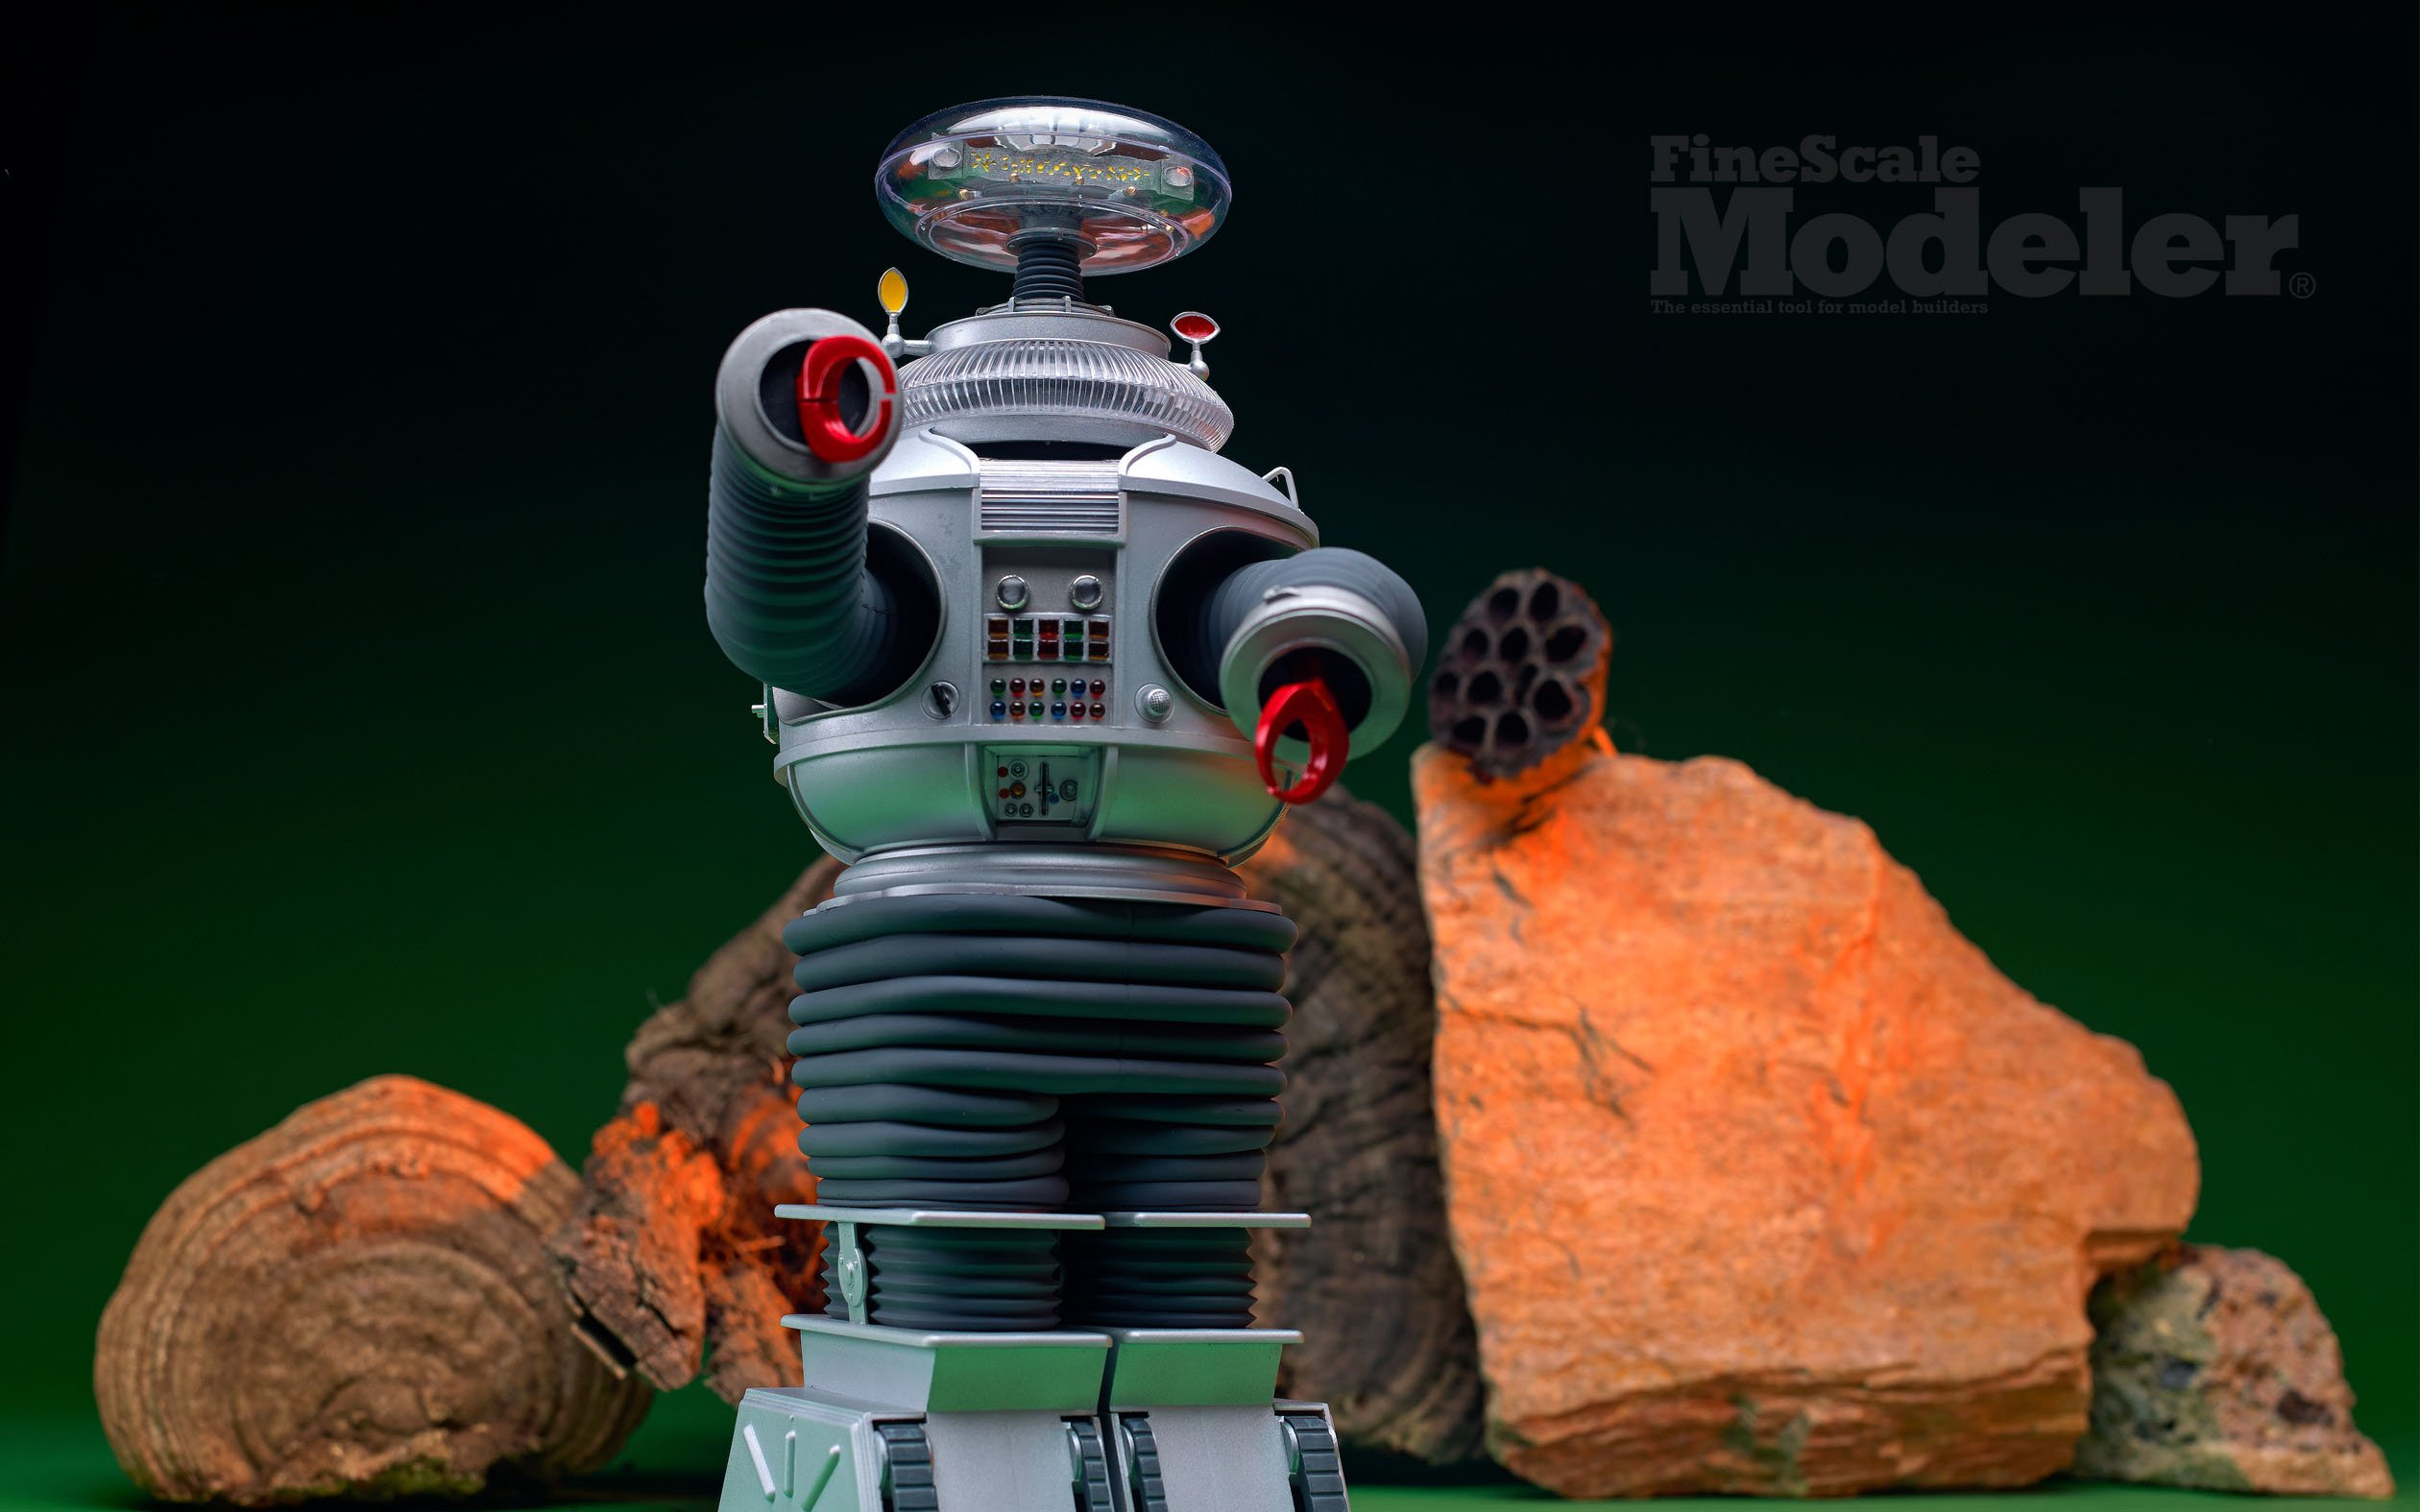 Lost in Space Robot B9 from Moebius Models   FineScale Modeler 2520x1575